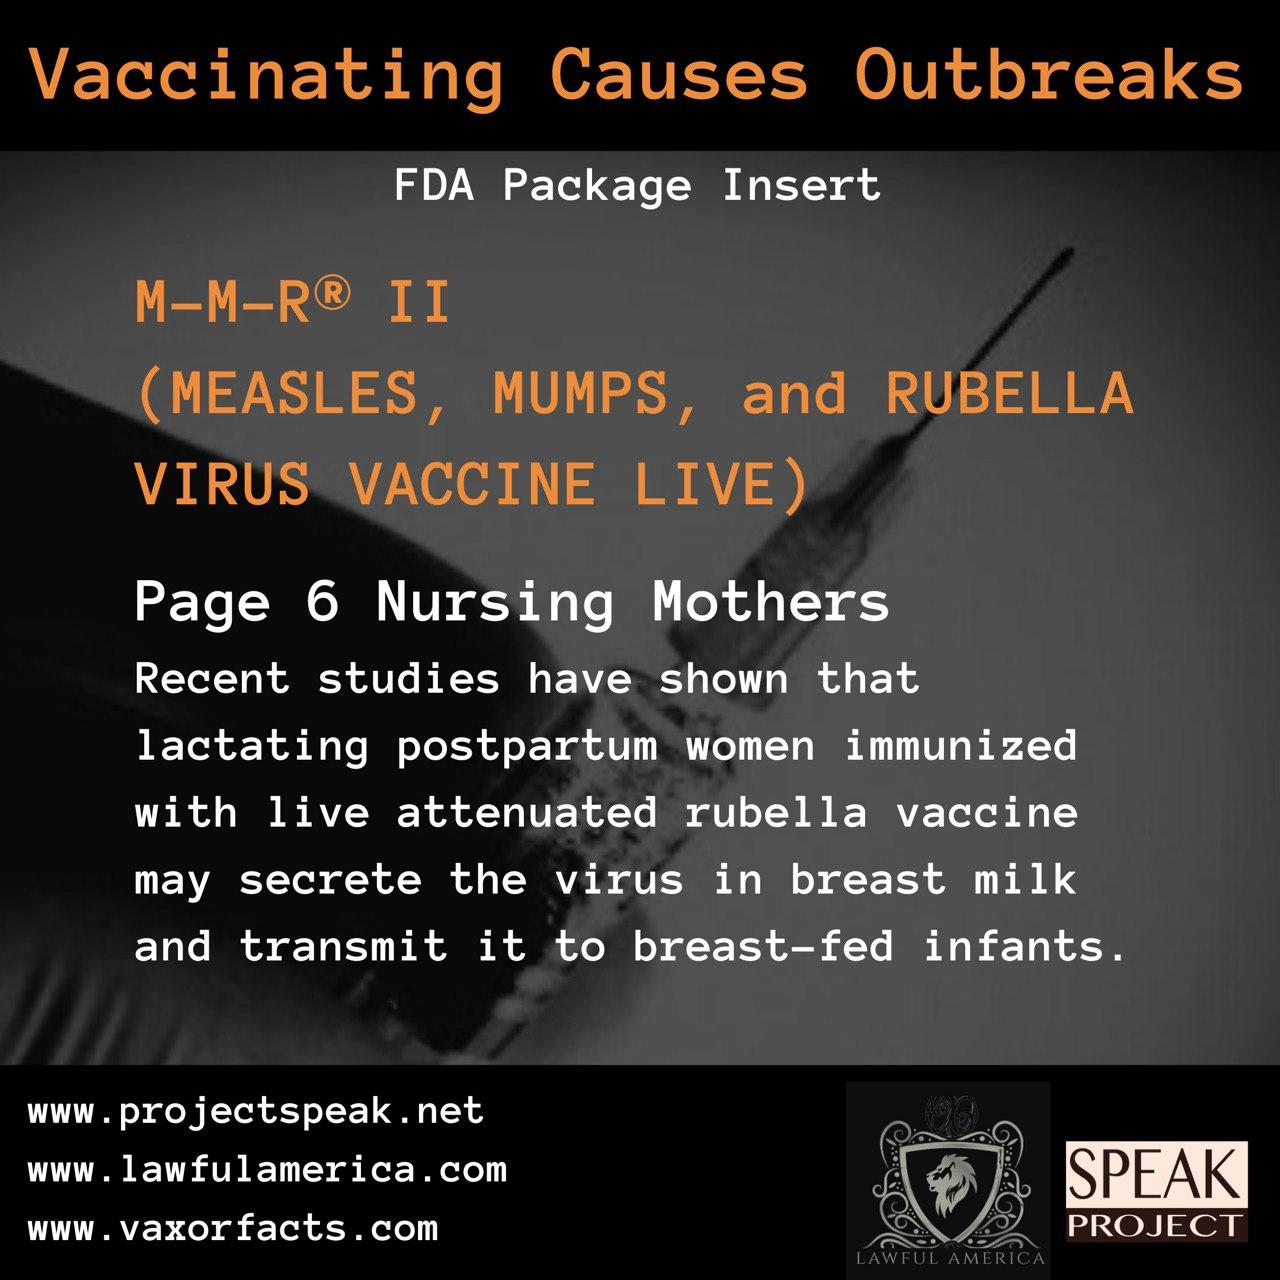 Vaccinating Causes Outbreaks - MMR II